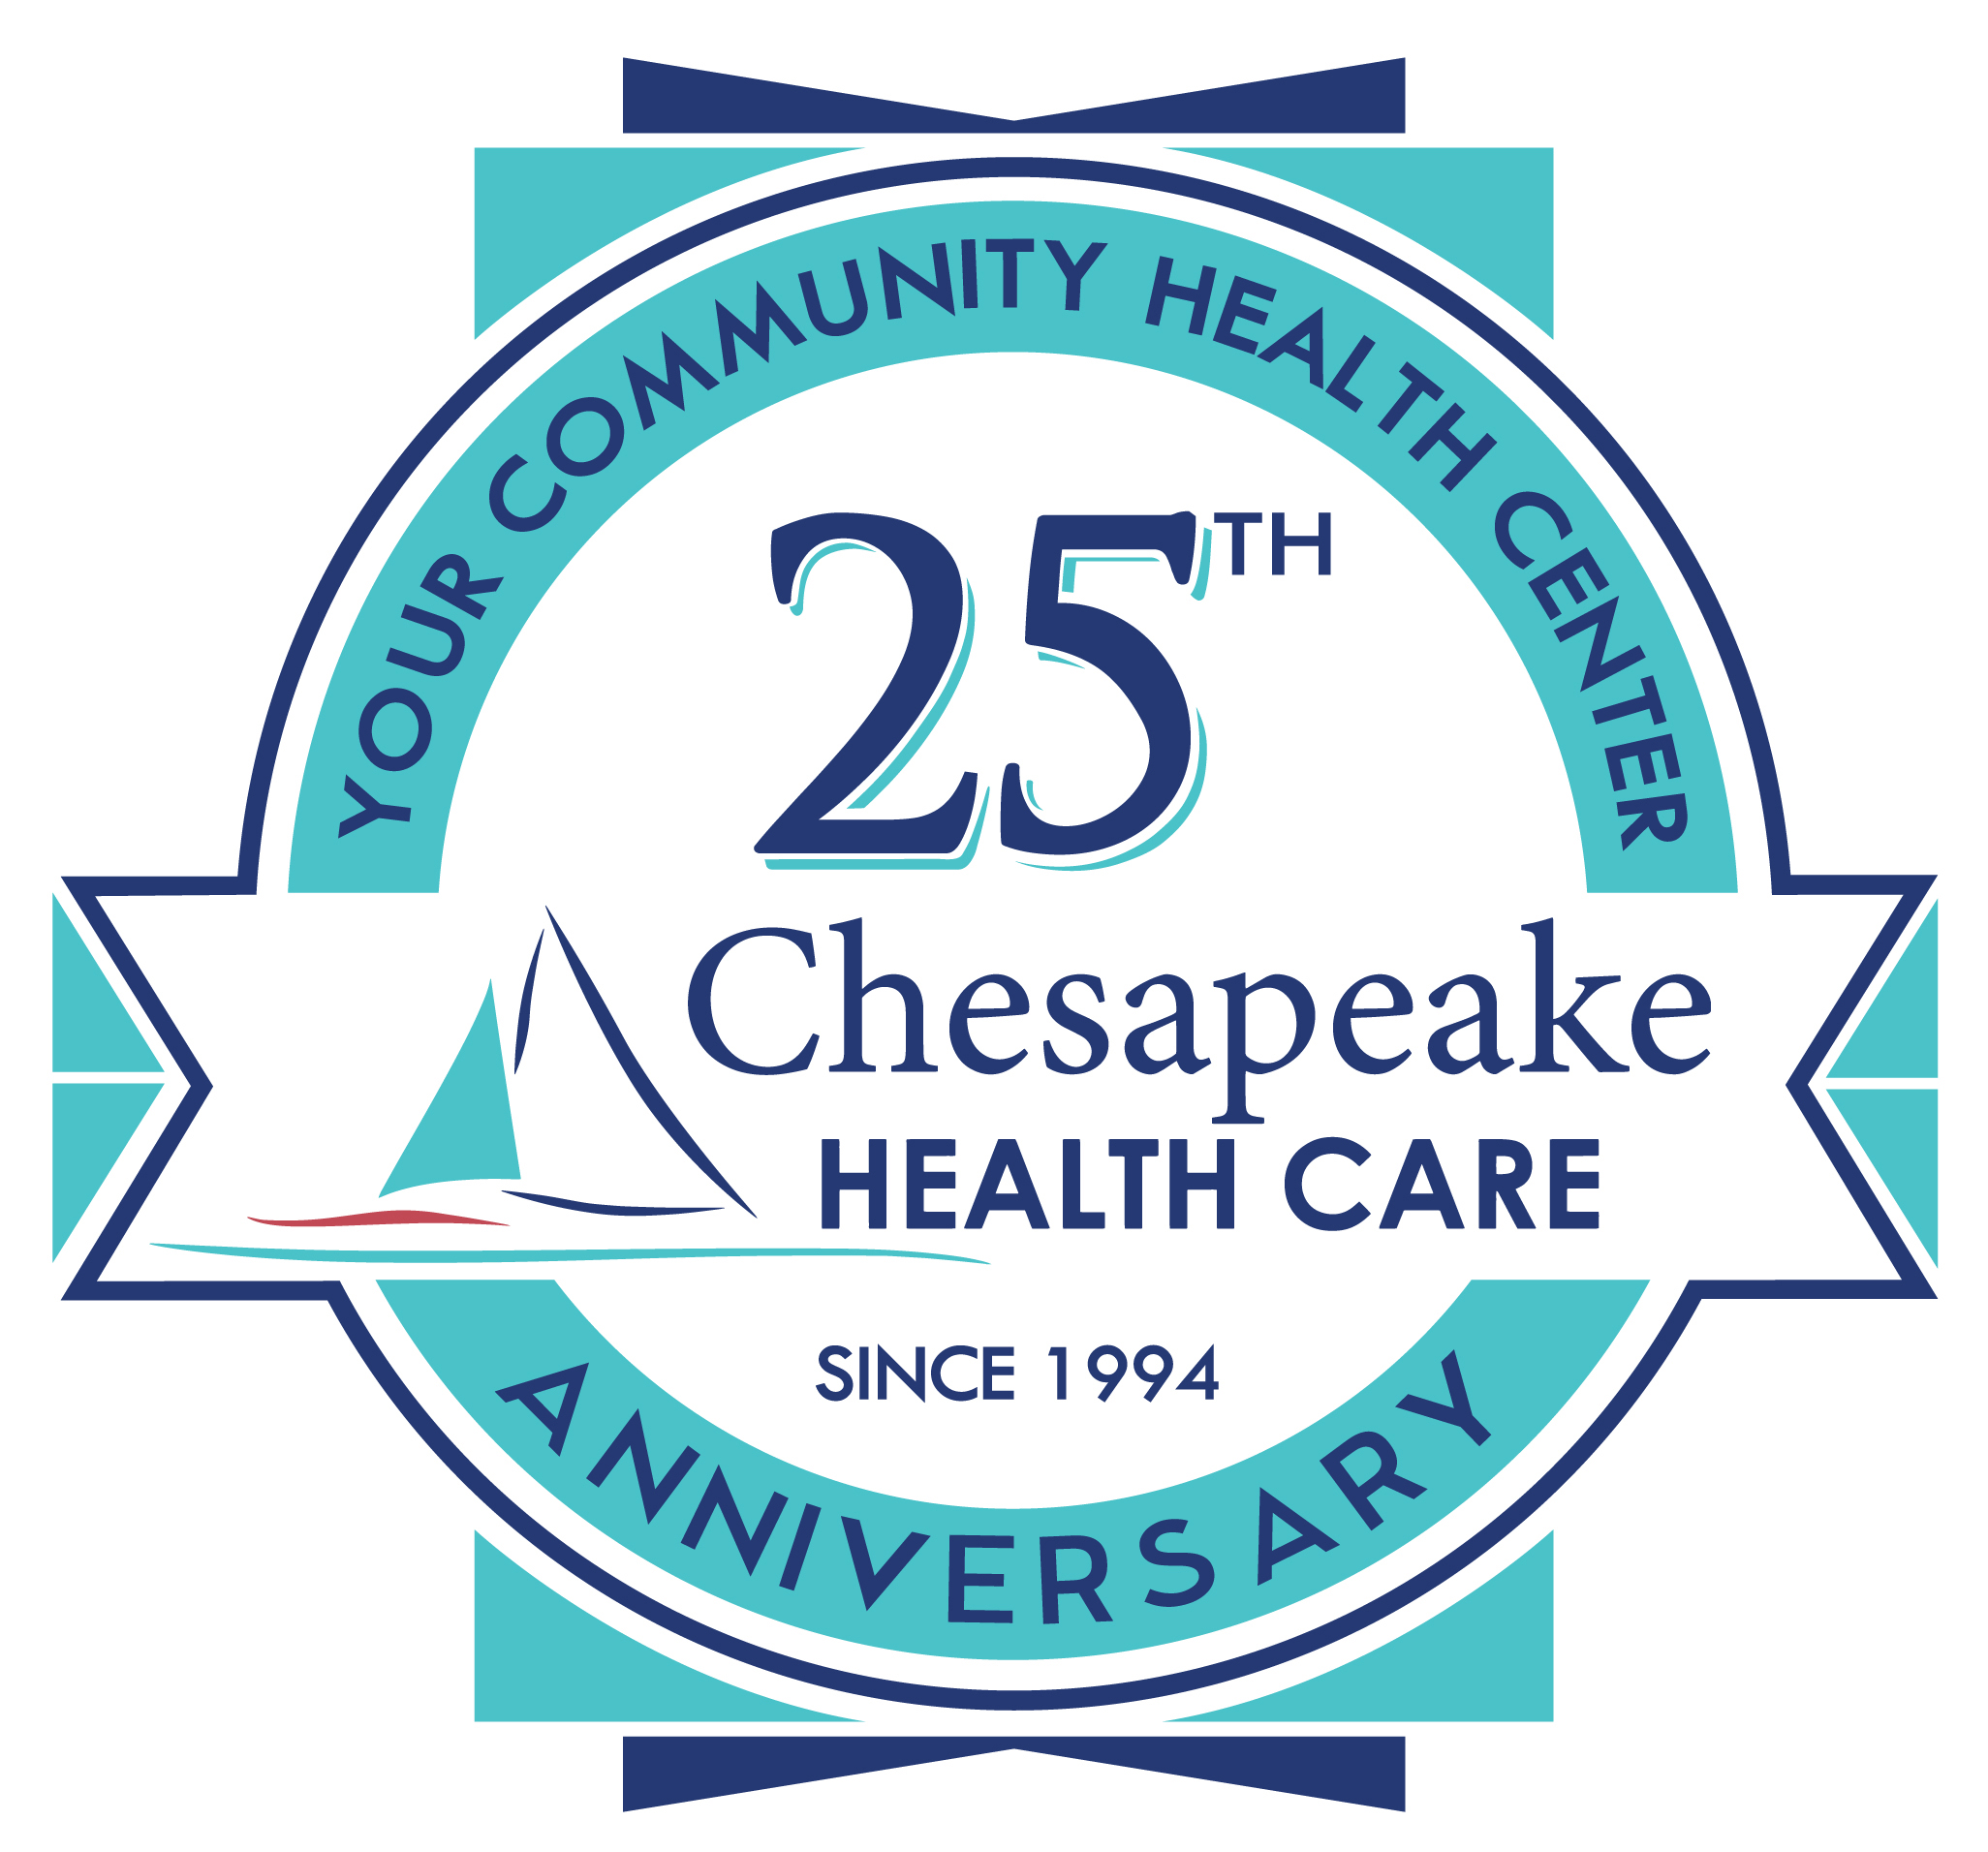 Chesapeake Health Care 6th Annual Golf Tournament logo